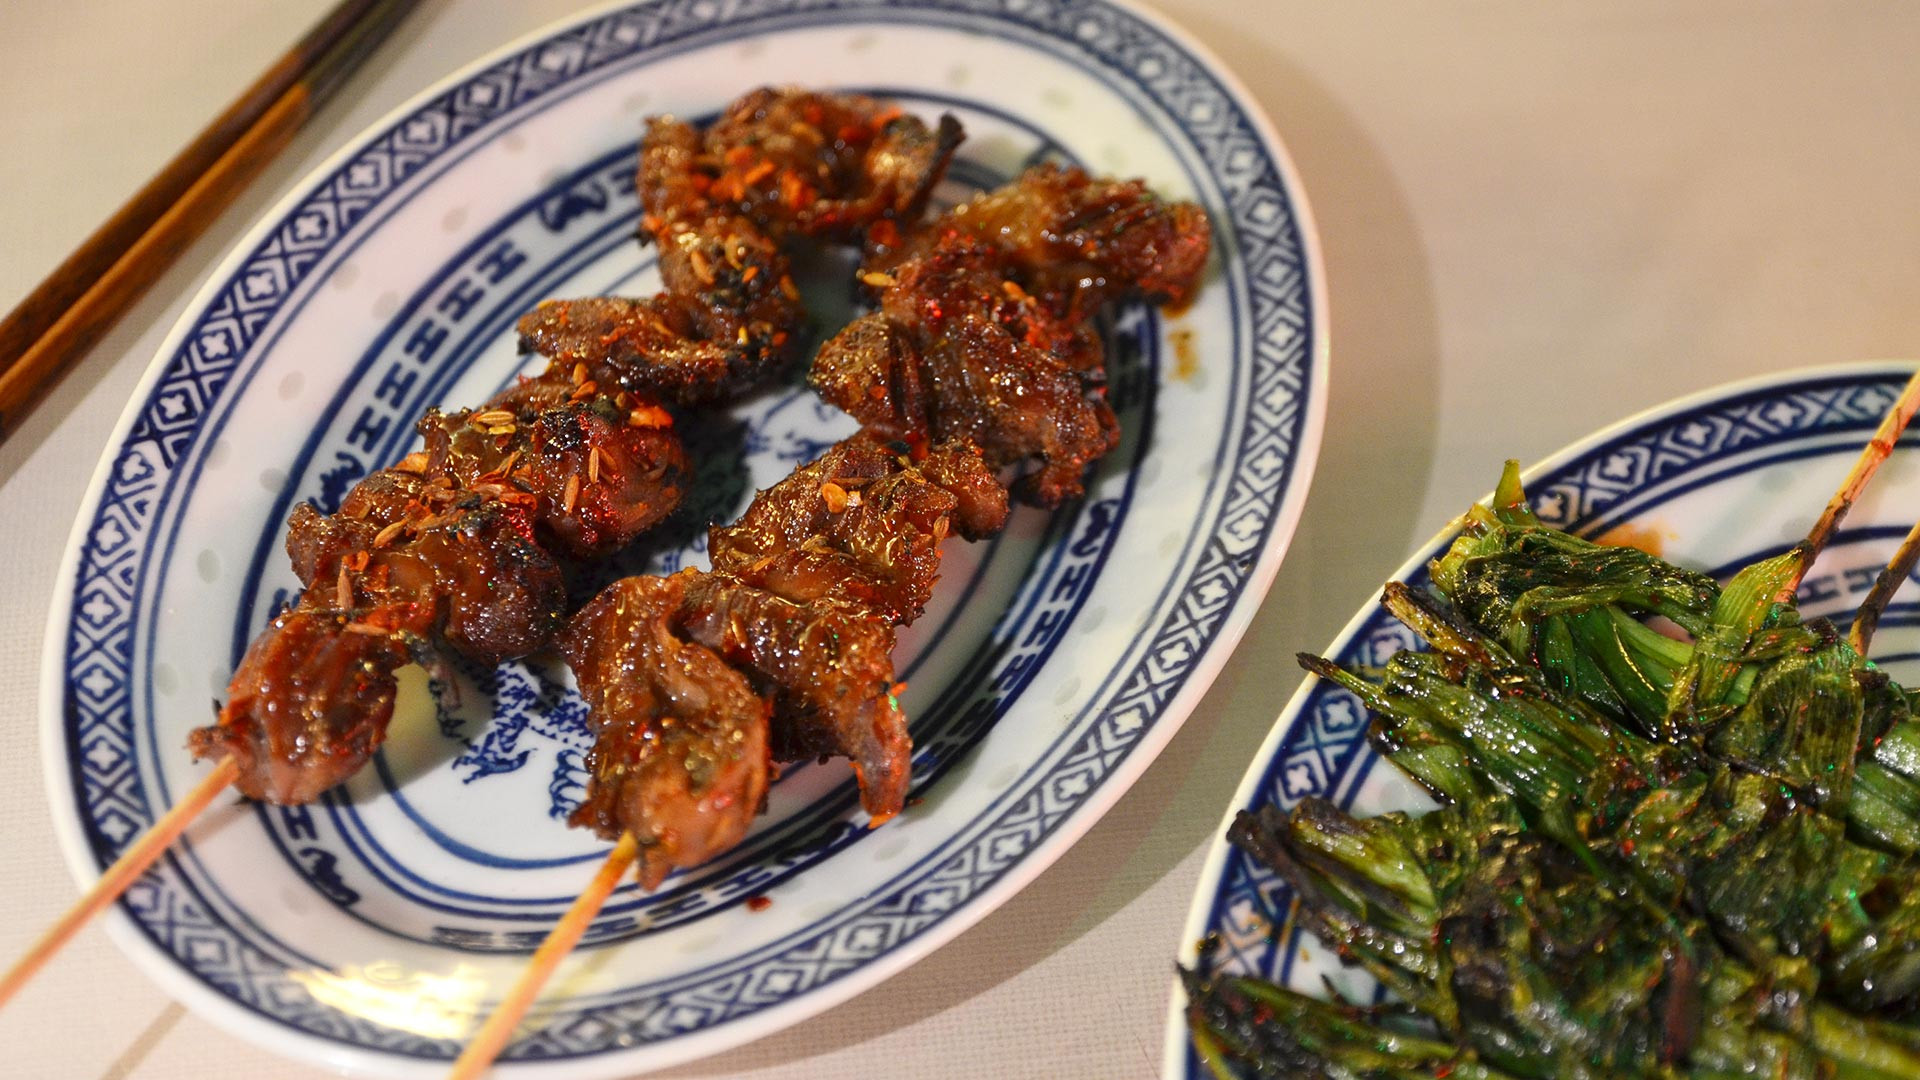 Chicken gizzard coal grilled skewers